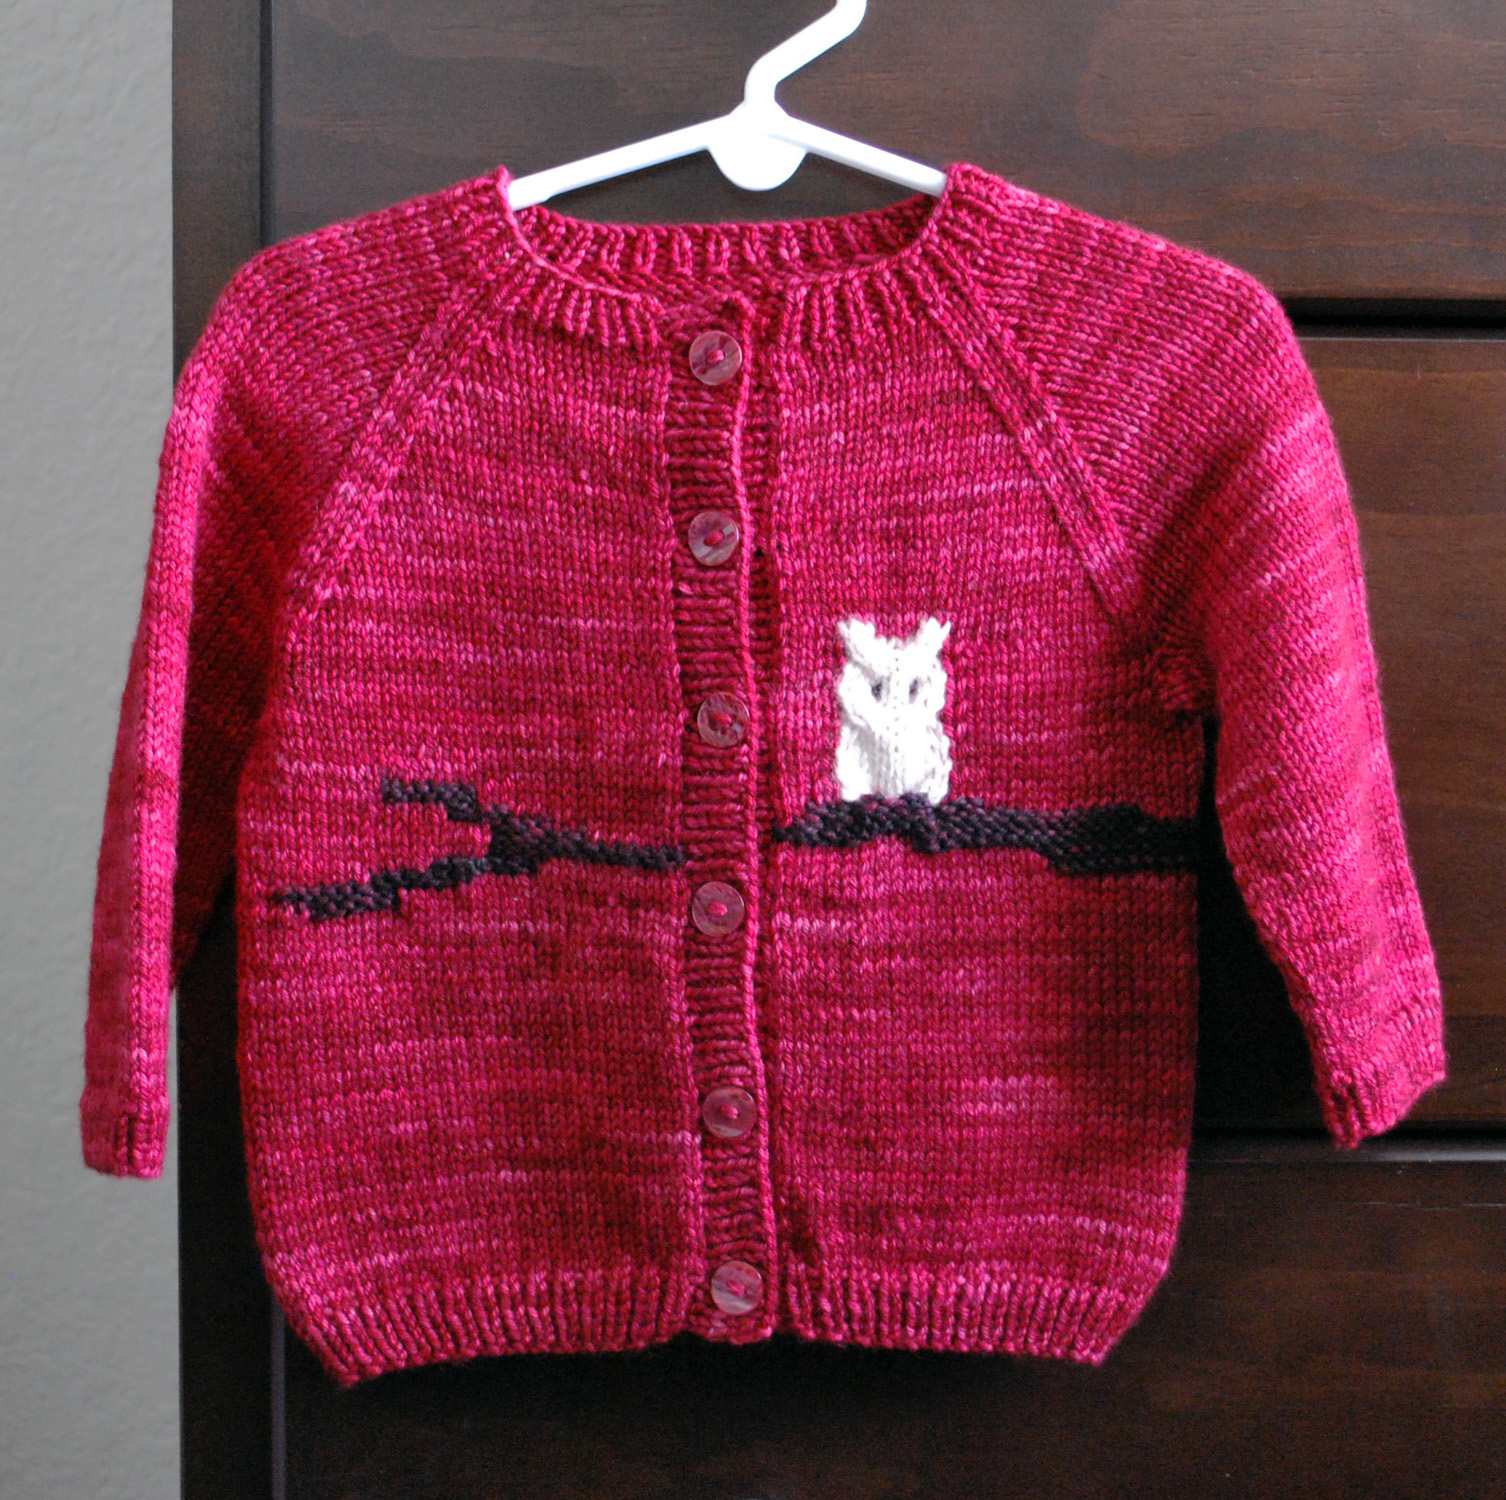 My Knitted Heart: October 2011